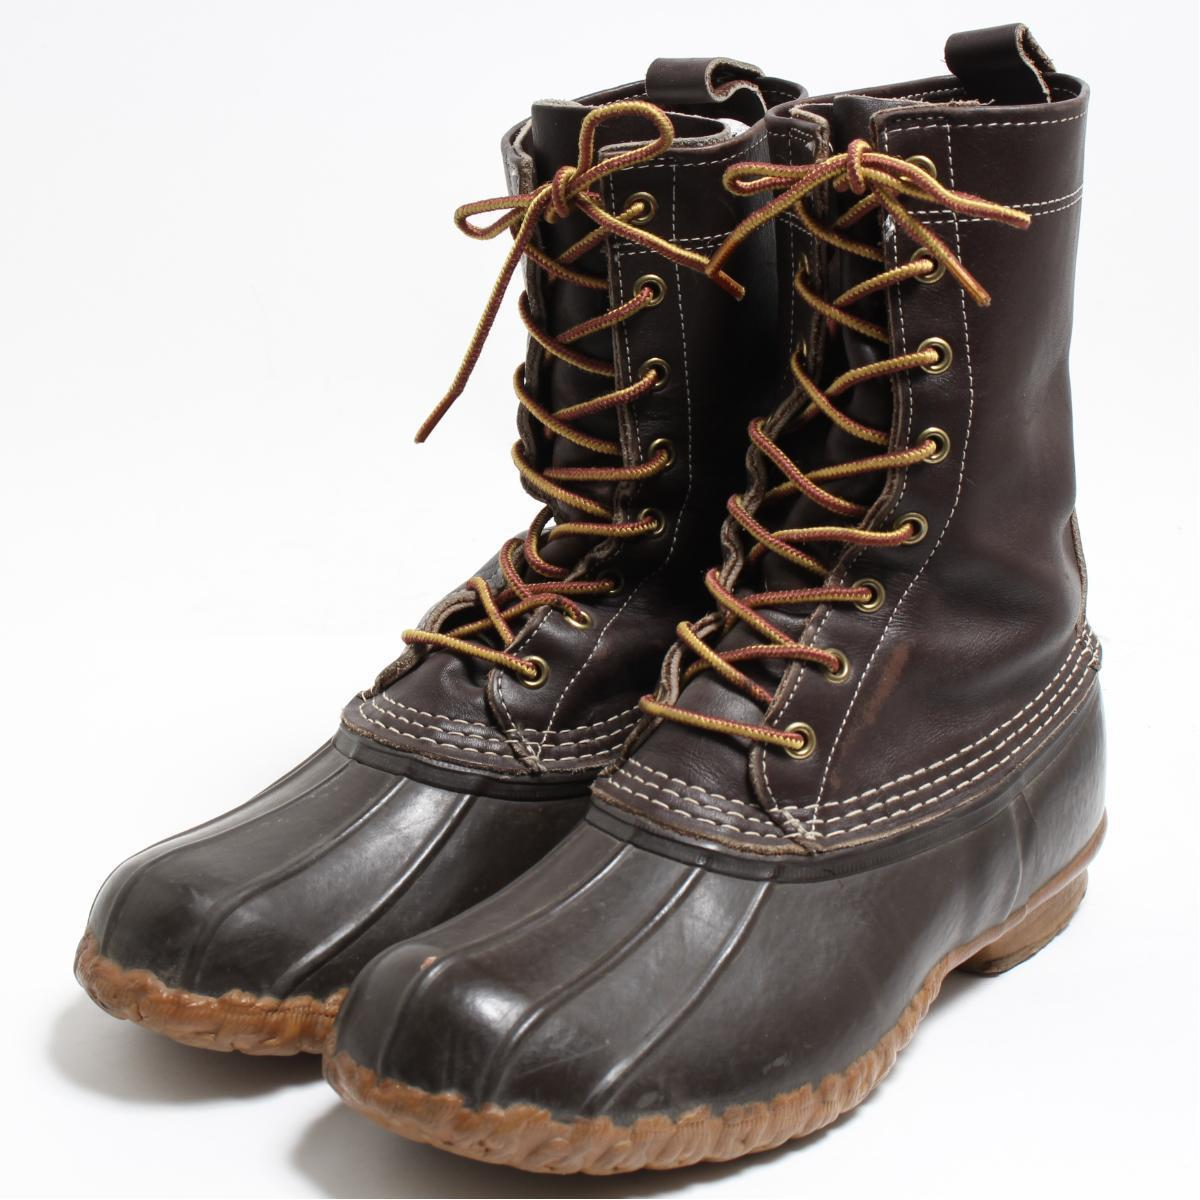 10M men 27 0cm vintage /bon9796 made in L  L  Bean L L Bean 10 inches 8  hall bean boots hunting boots USA